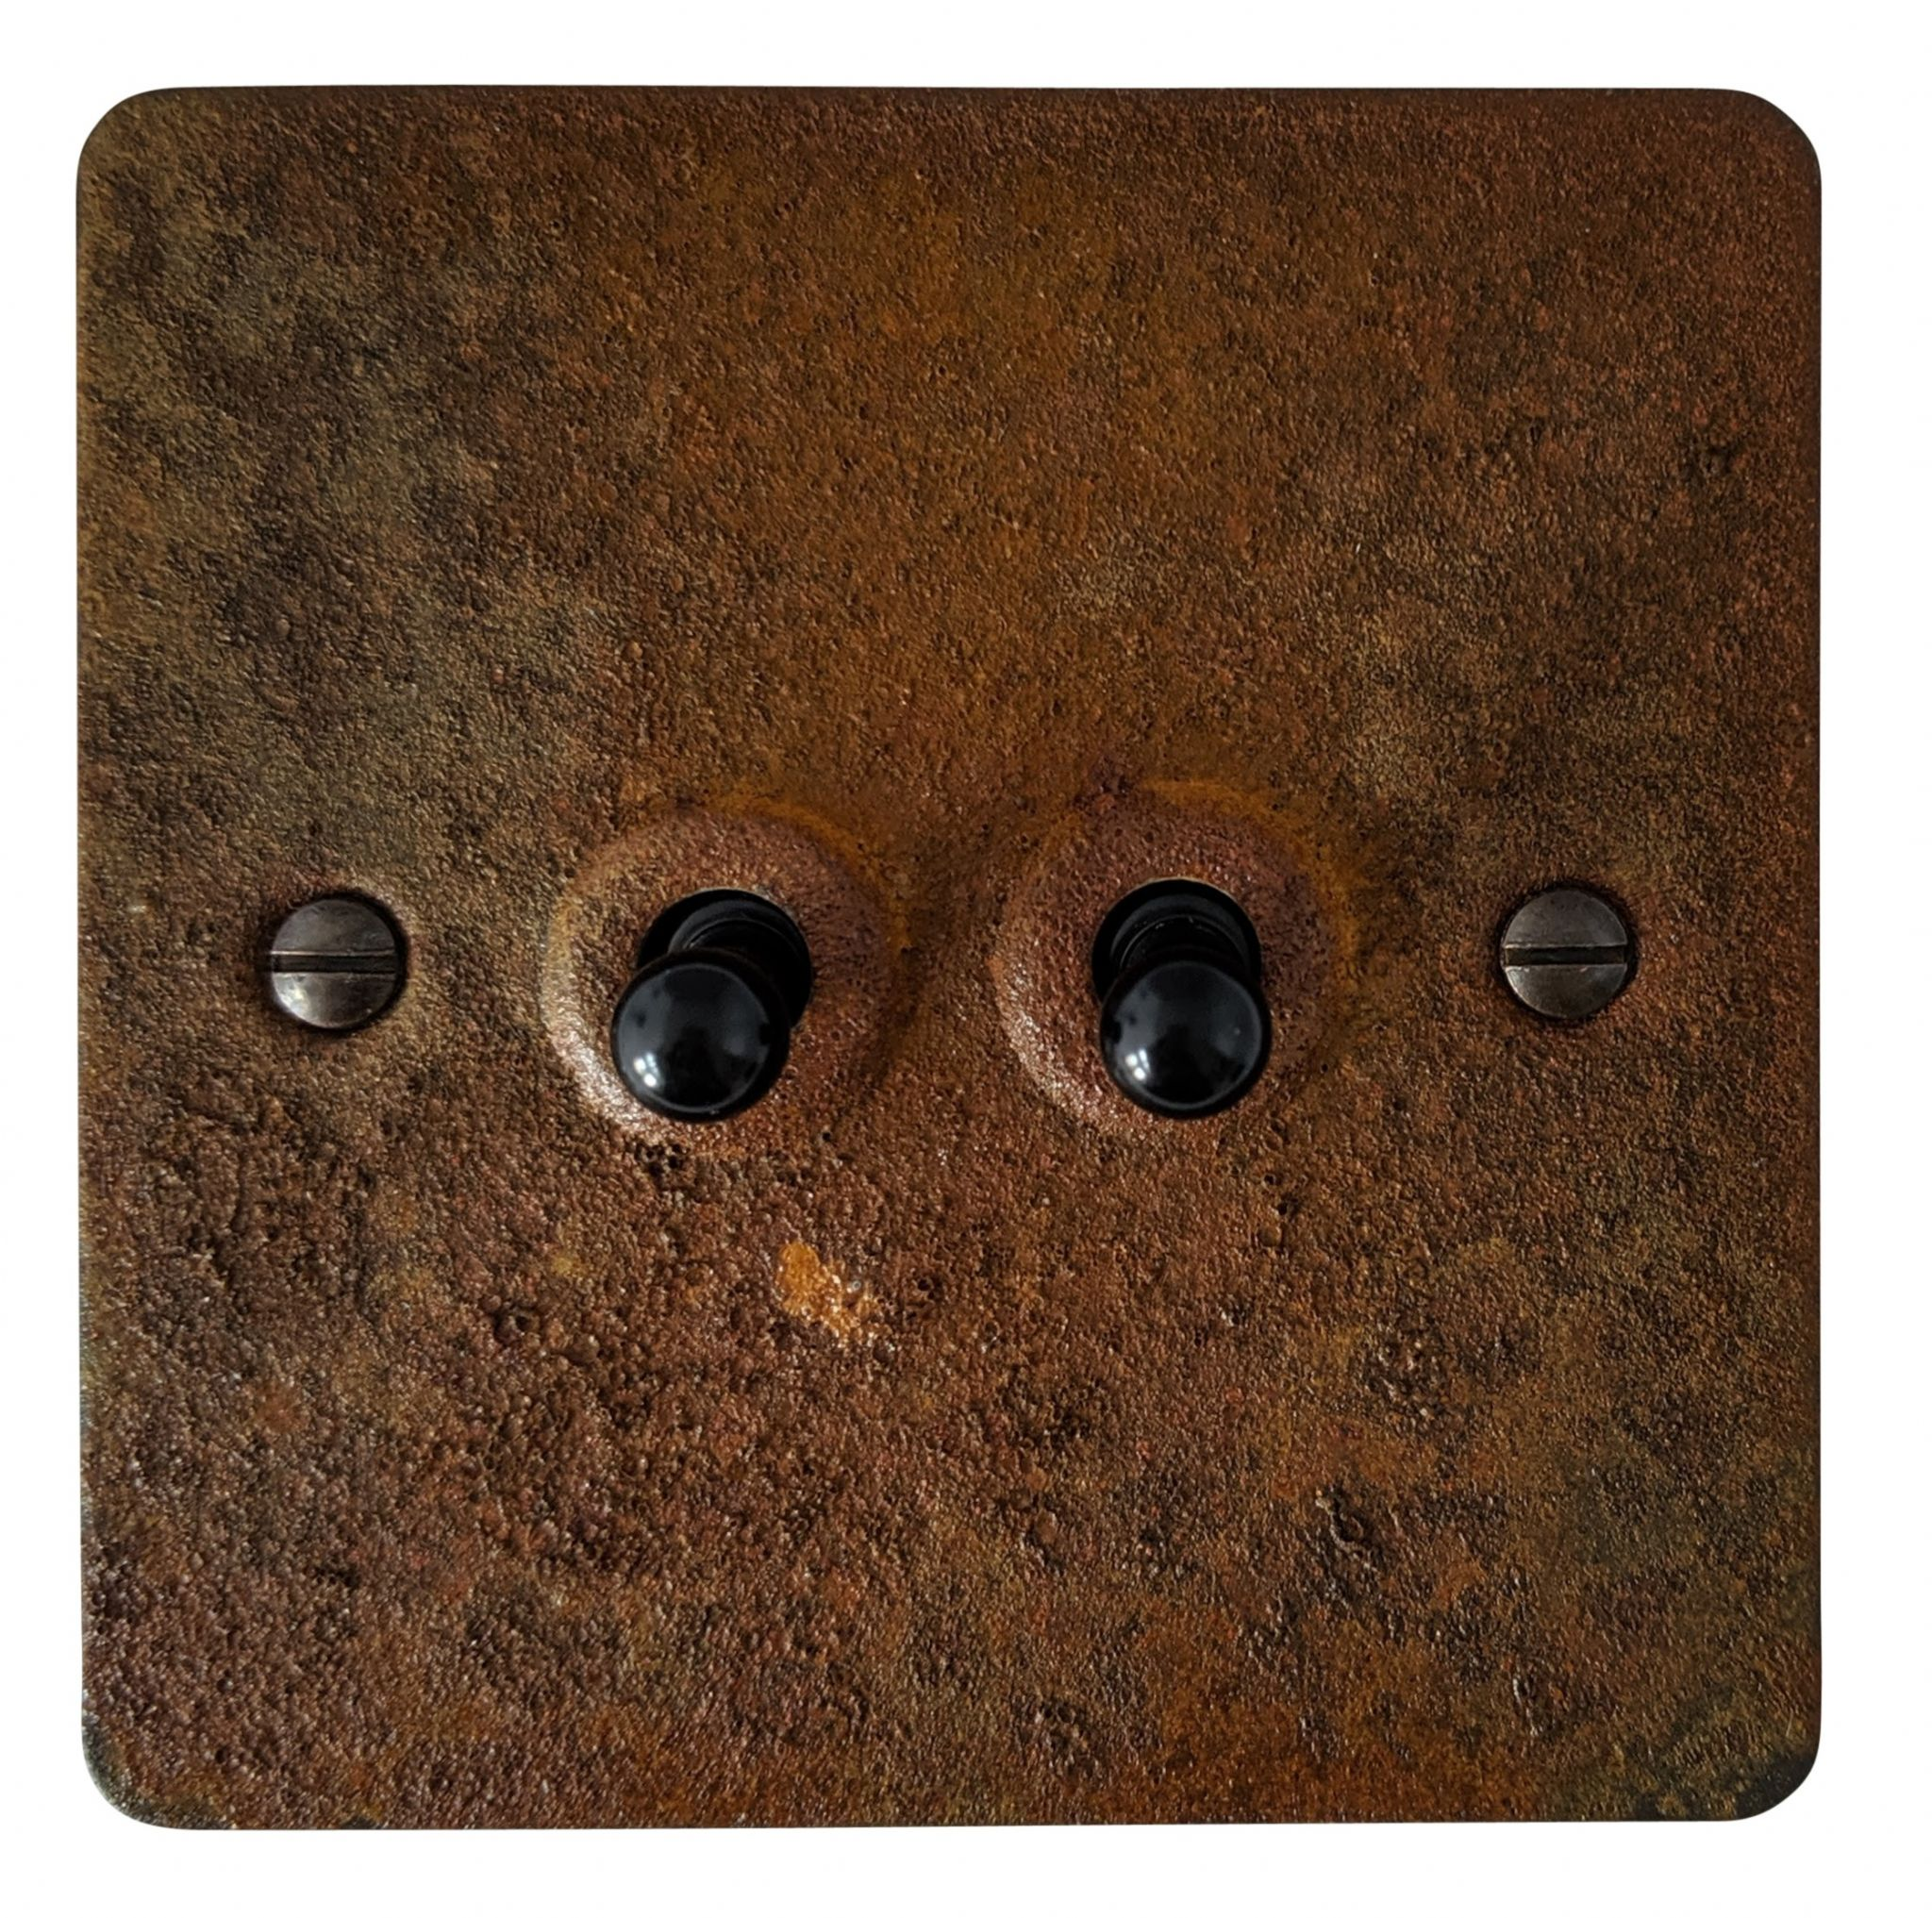 G&H FRT282 Flat Plate Rust 2 Gang 1 or 2 Way Toggle Light Switch